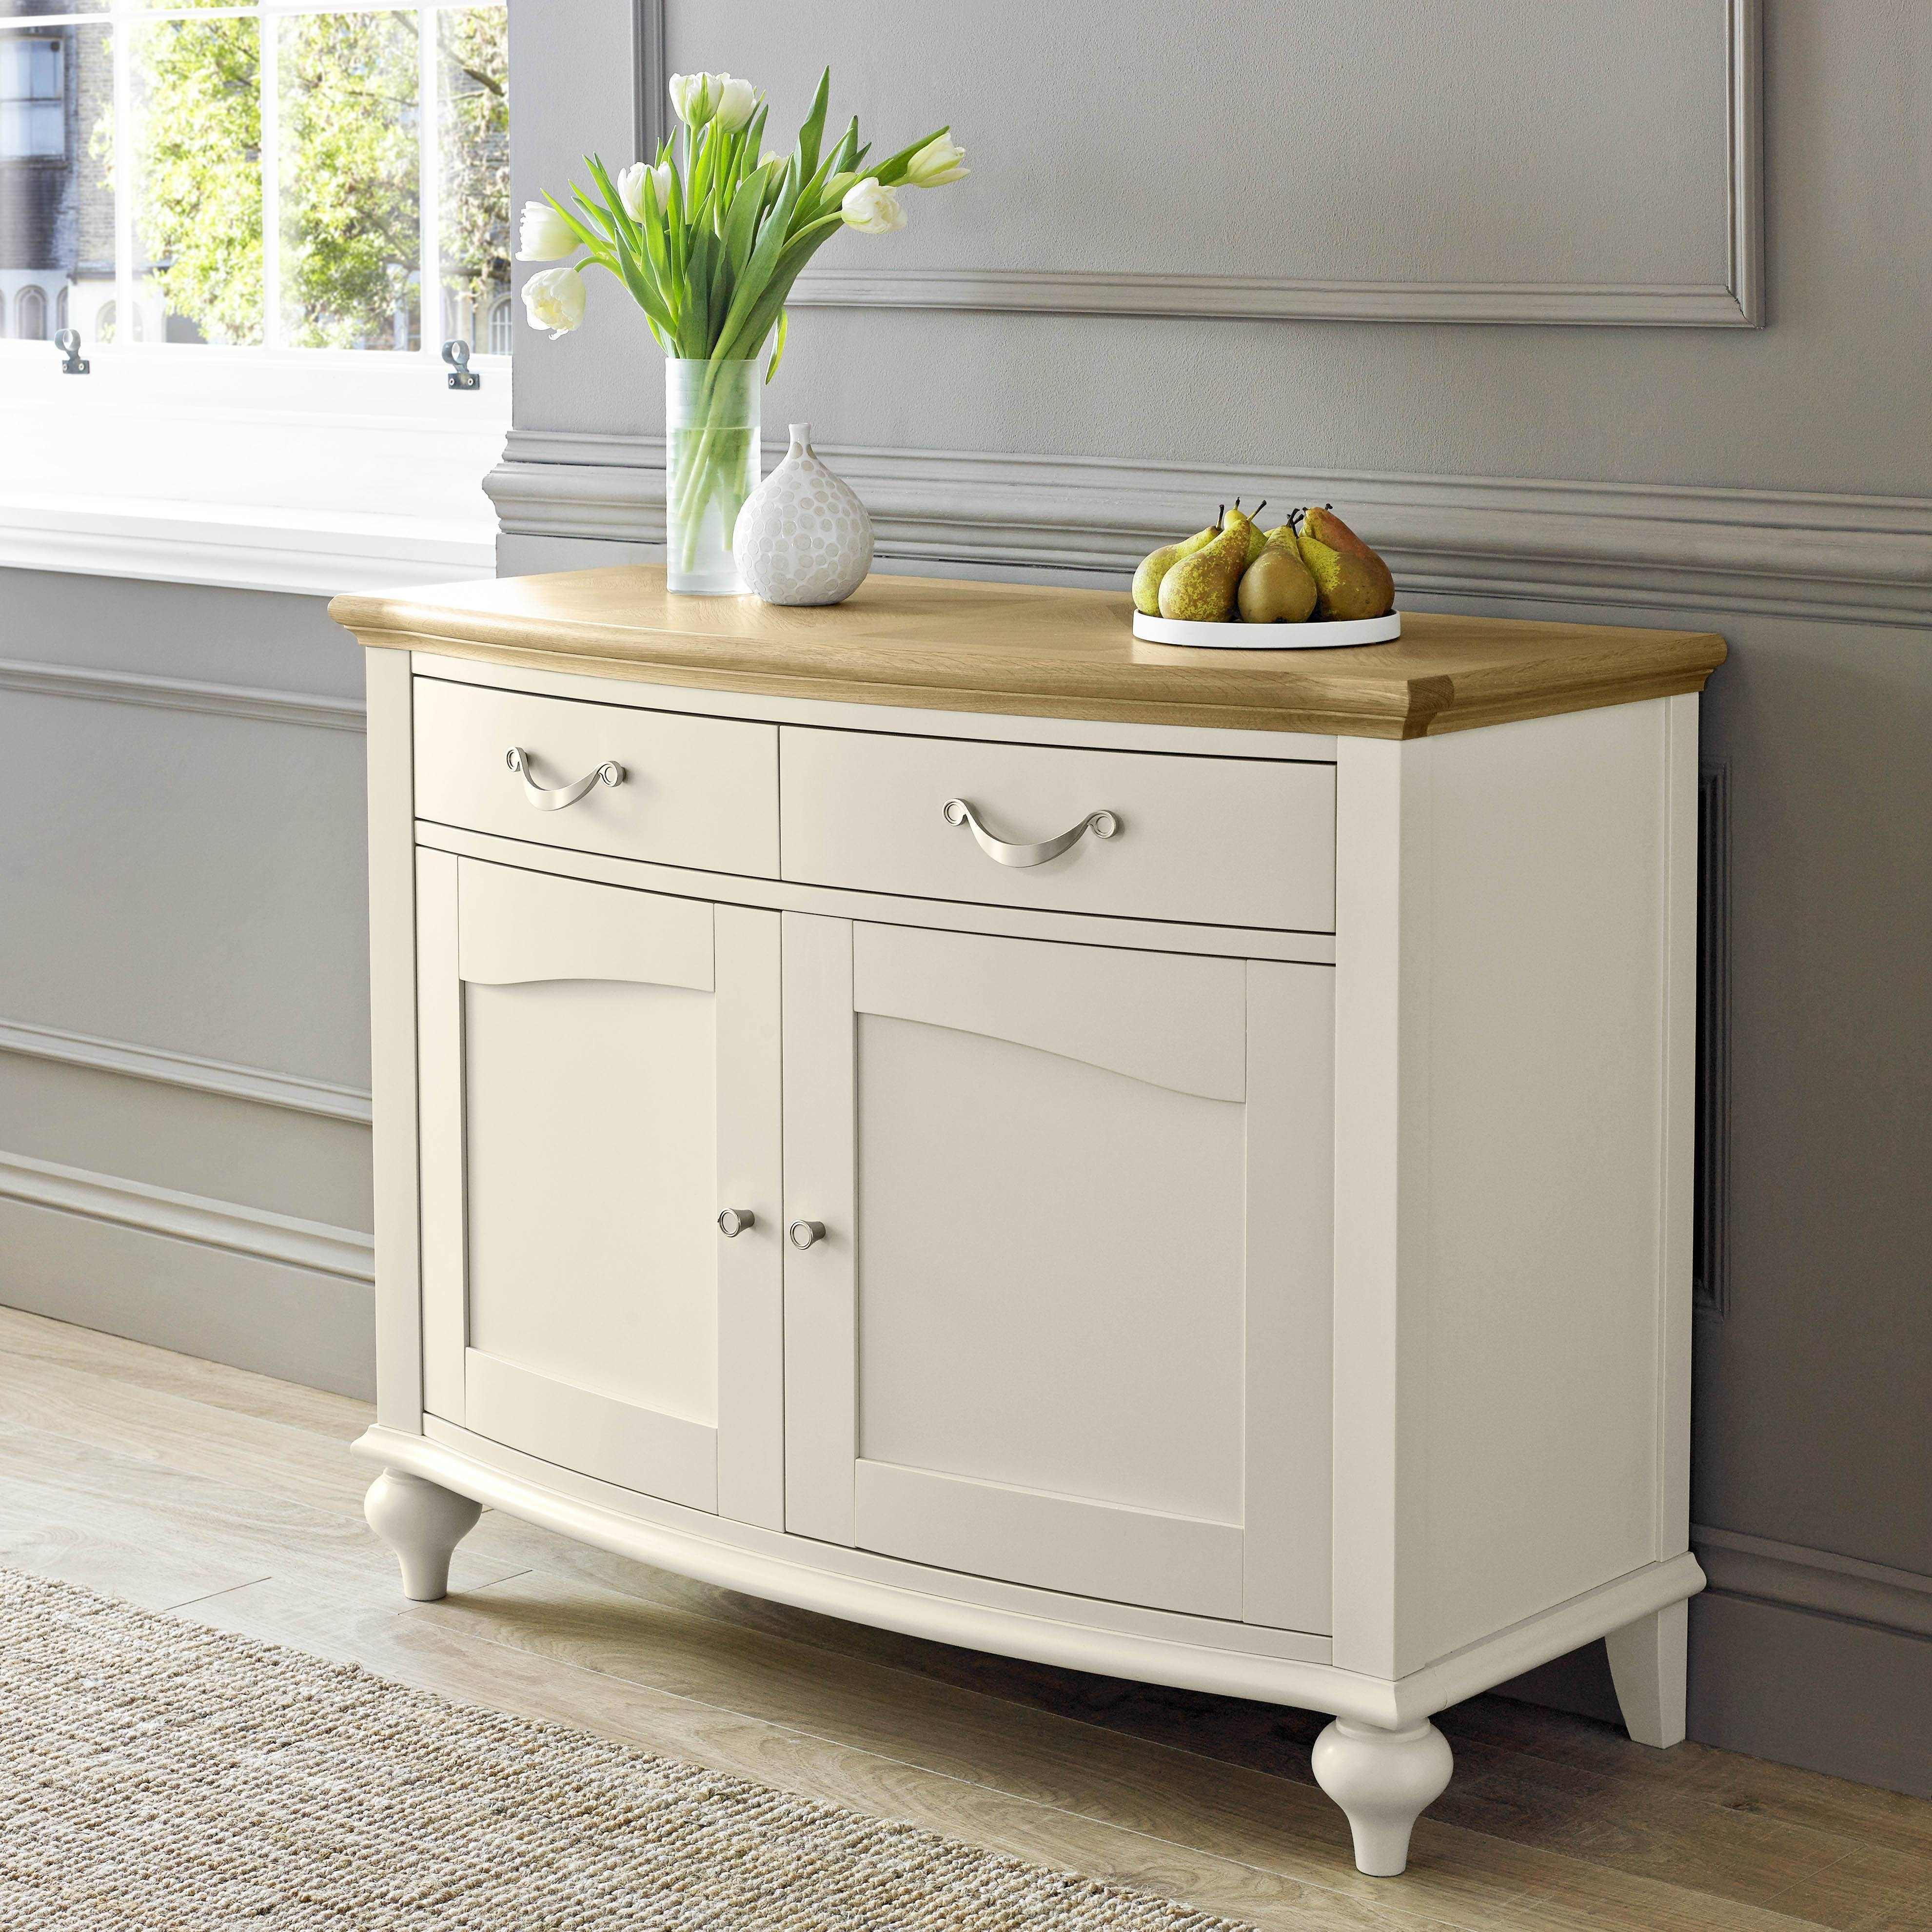 Tuscany Pale Oak & Antique White Narrow Sideboard With Narrow Sideboards (#19 of 20)